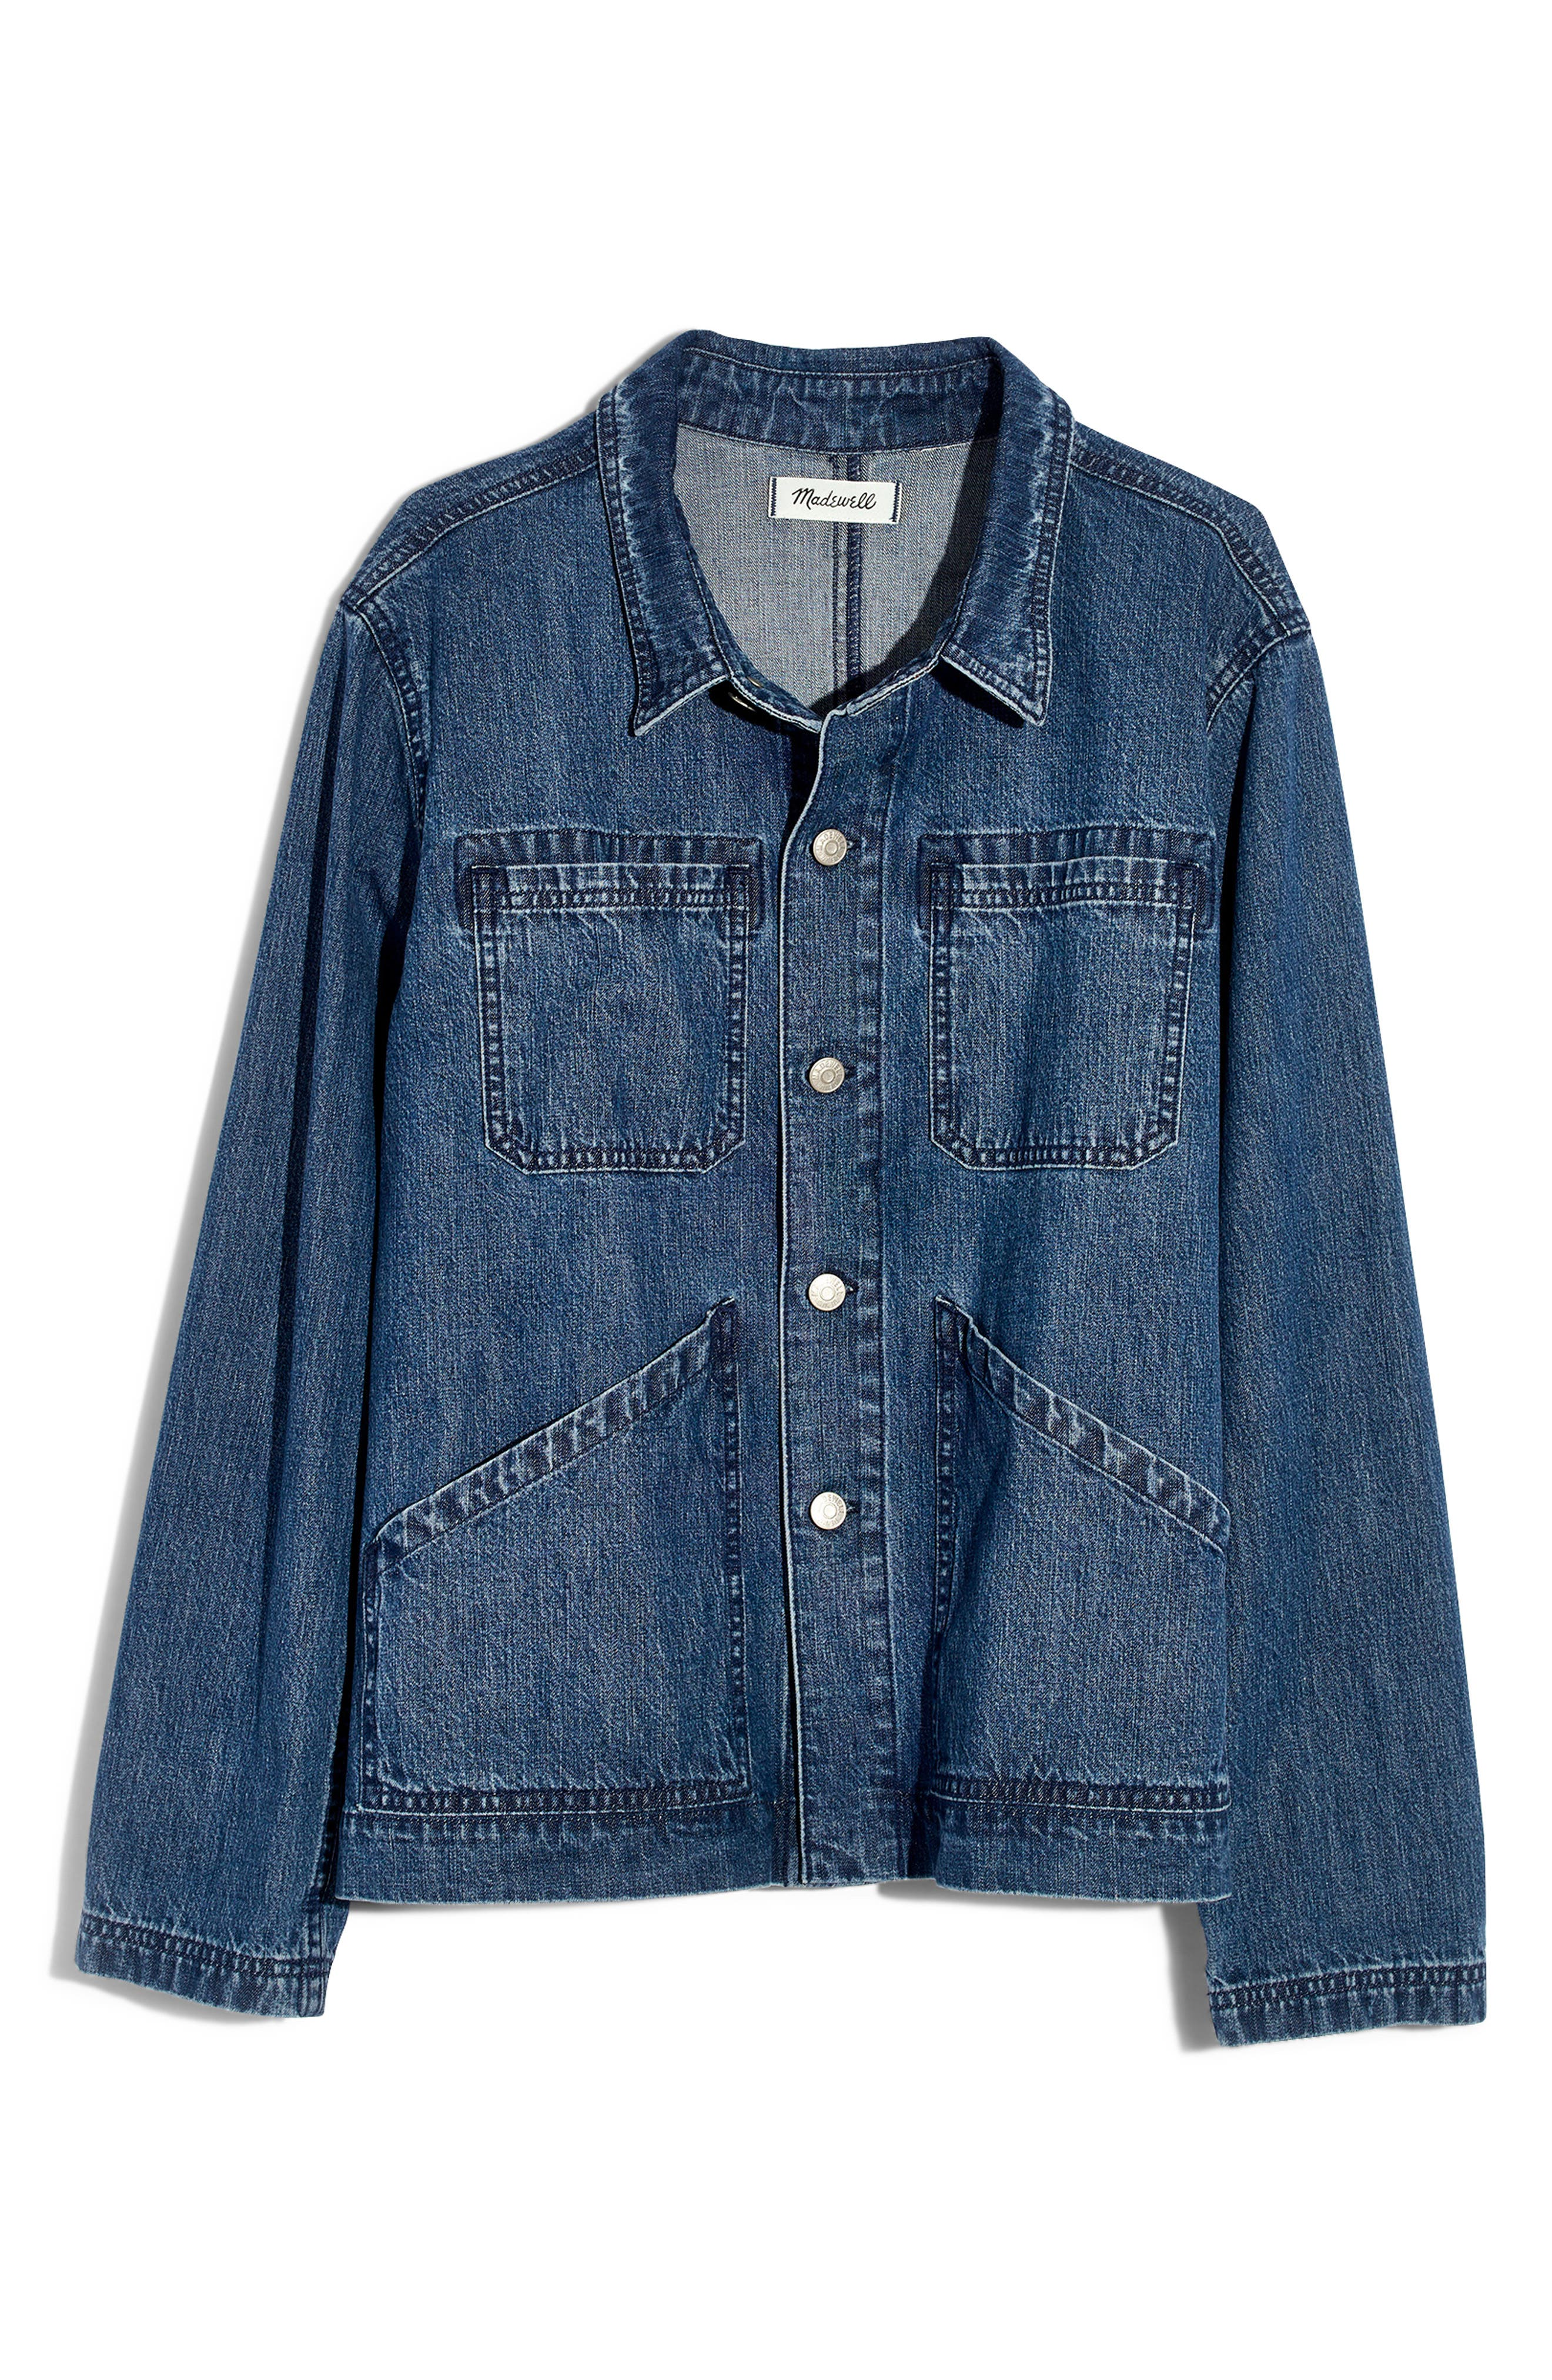 MADEWELL, Denim Patch Pocket Chore Coat, Alternate thumbnail 6, color, 400